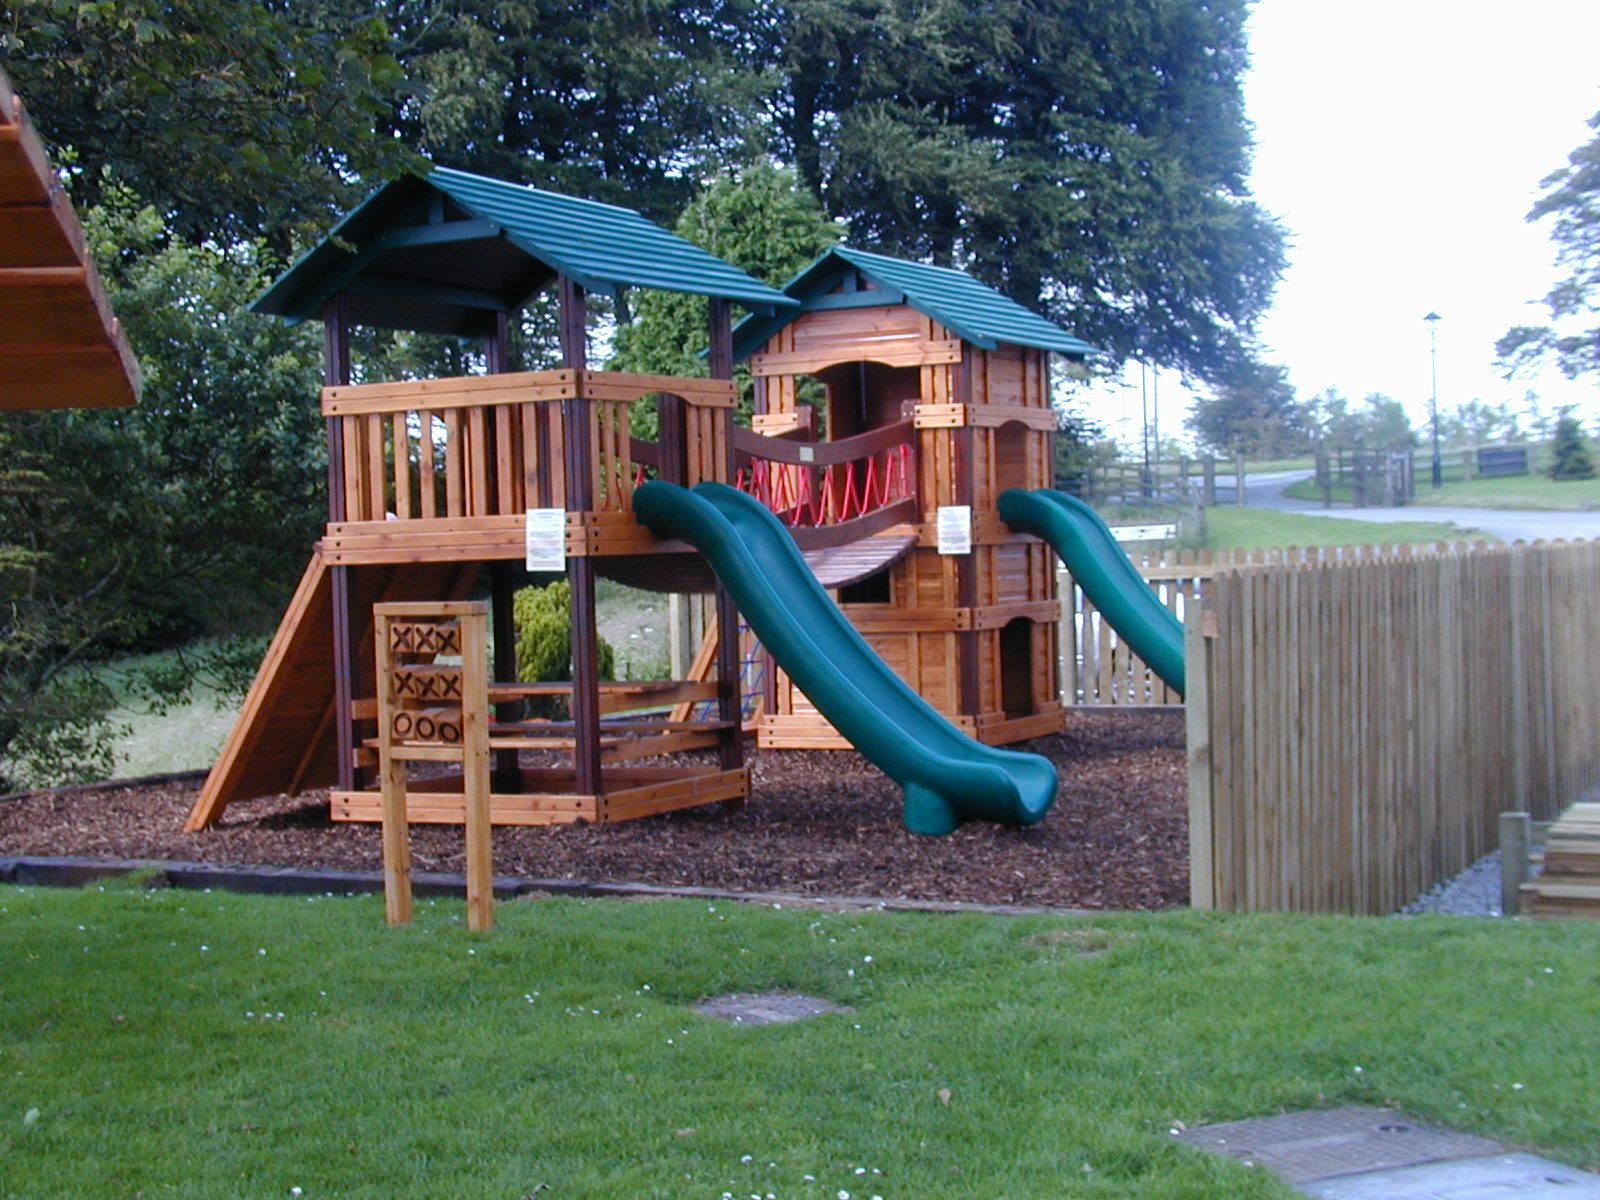 backyard kids play area ideas we also have an exciting outdoor